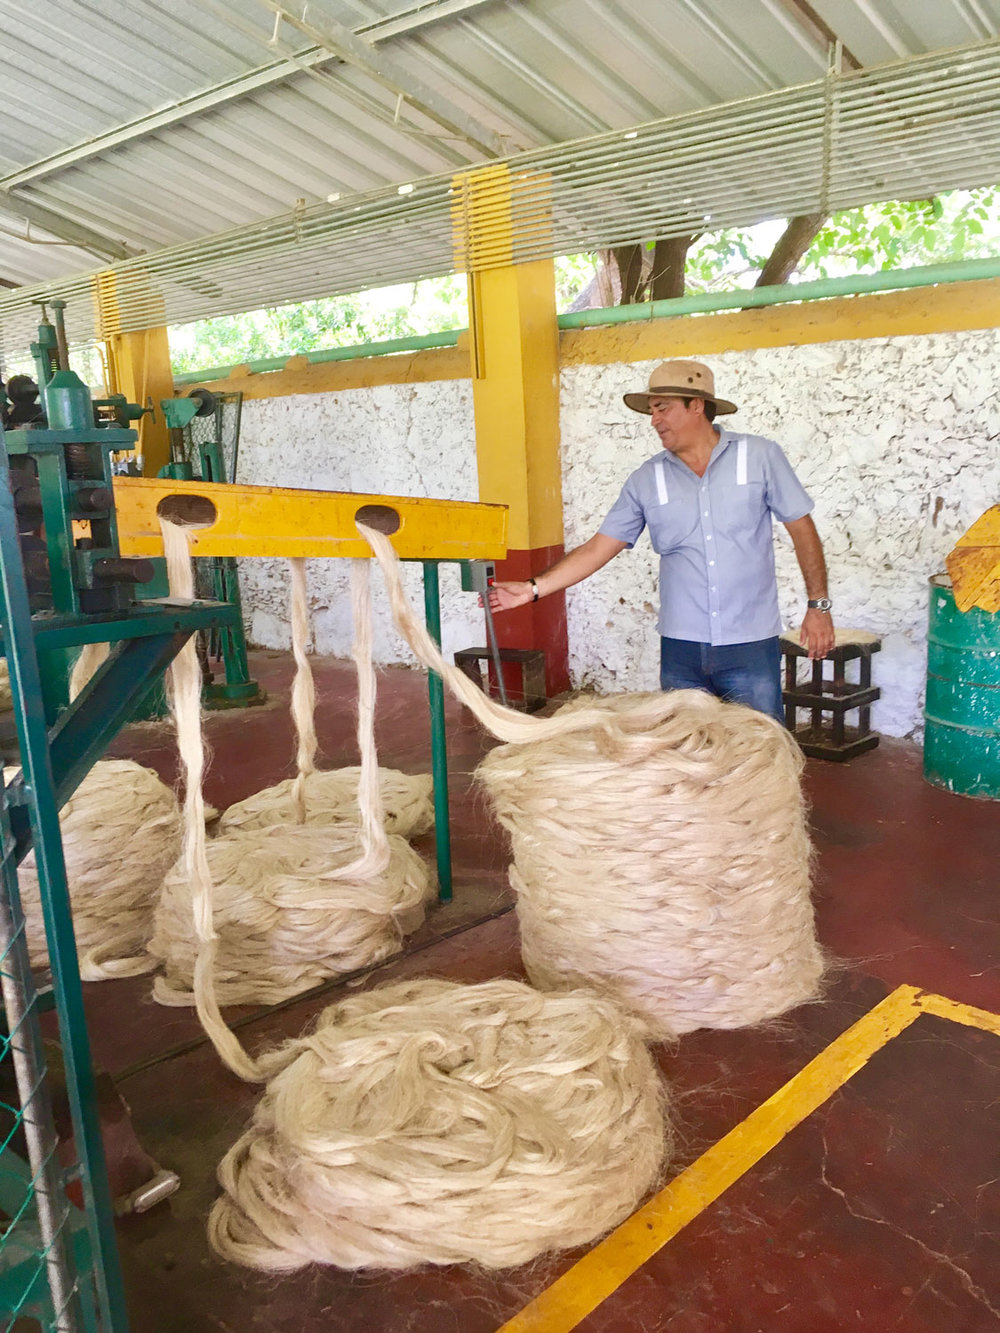 Our guide Miguel showing us a range of machines processing different thickness of sisal rope.